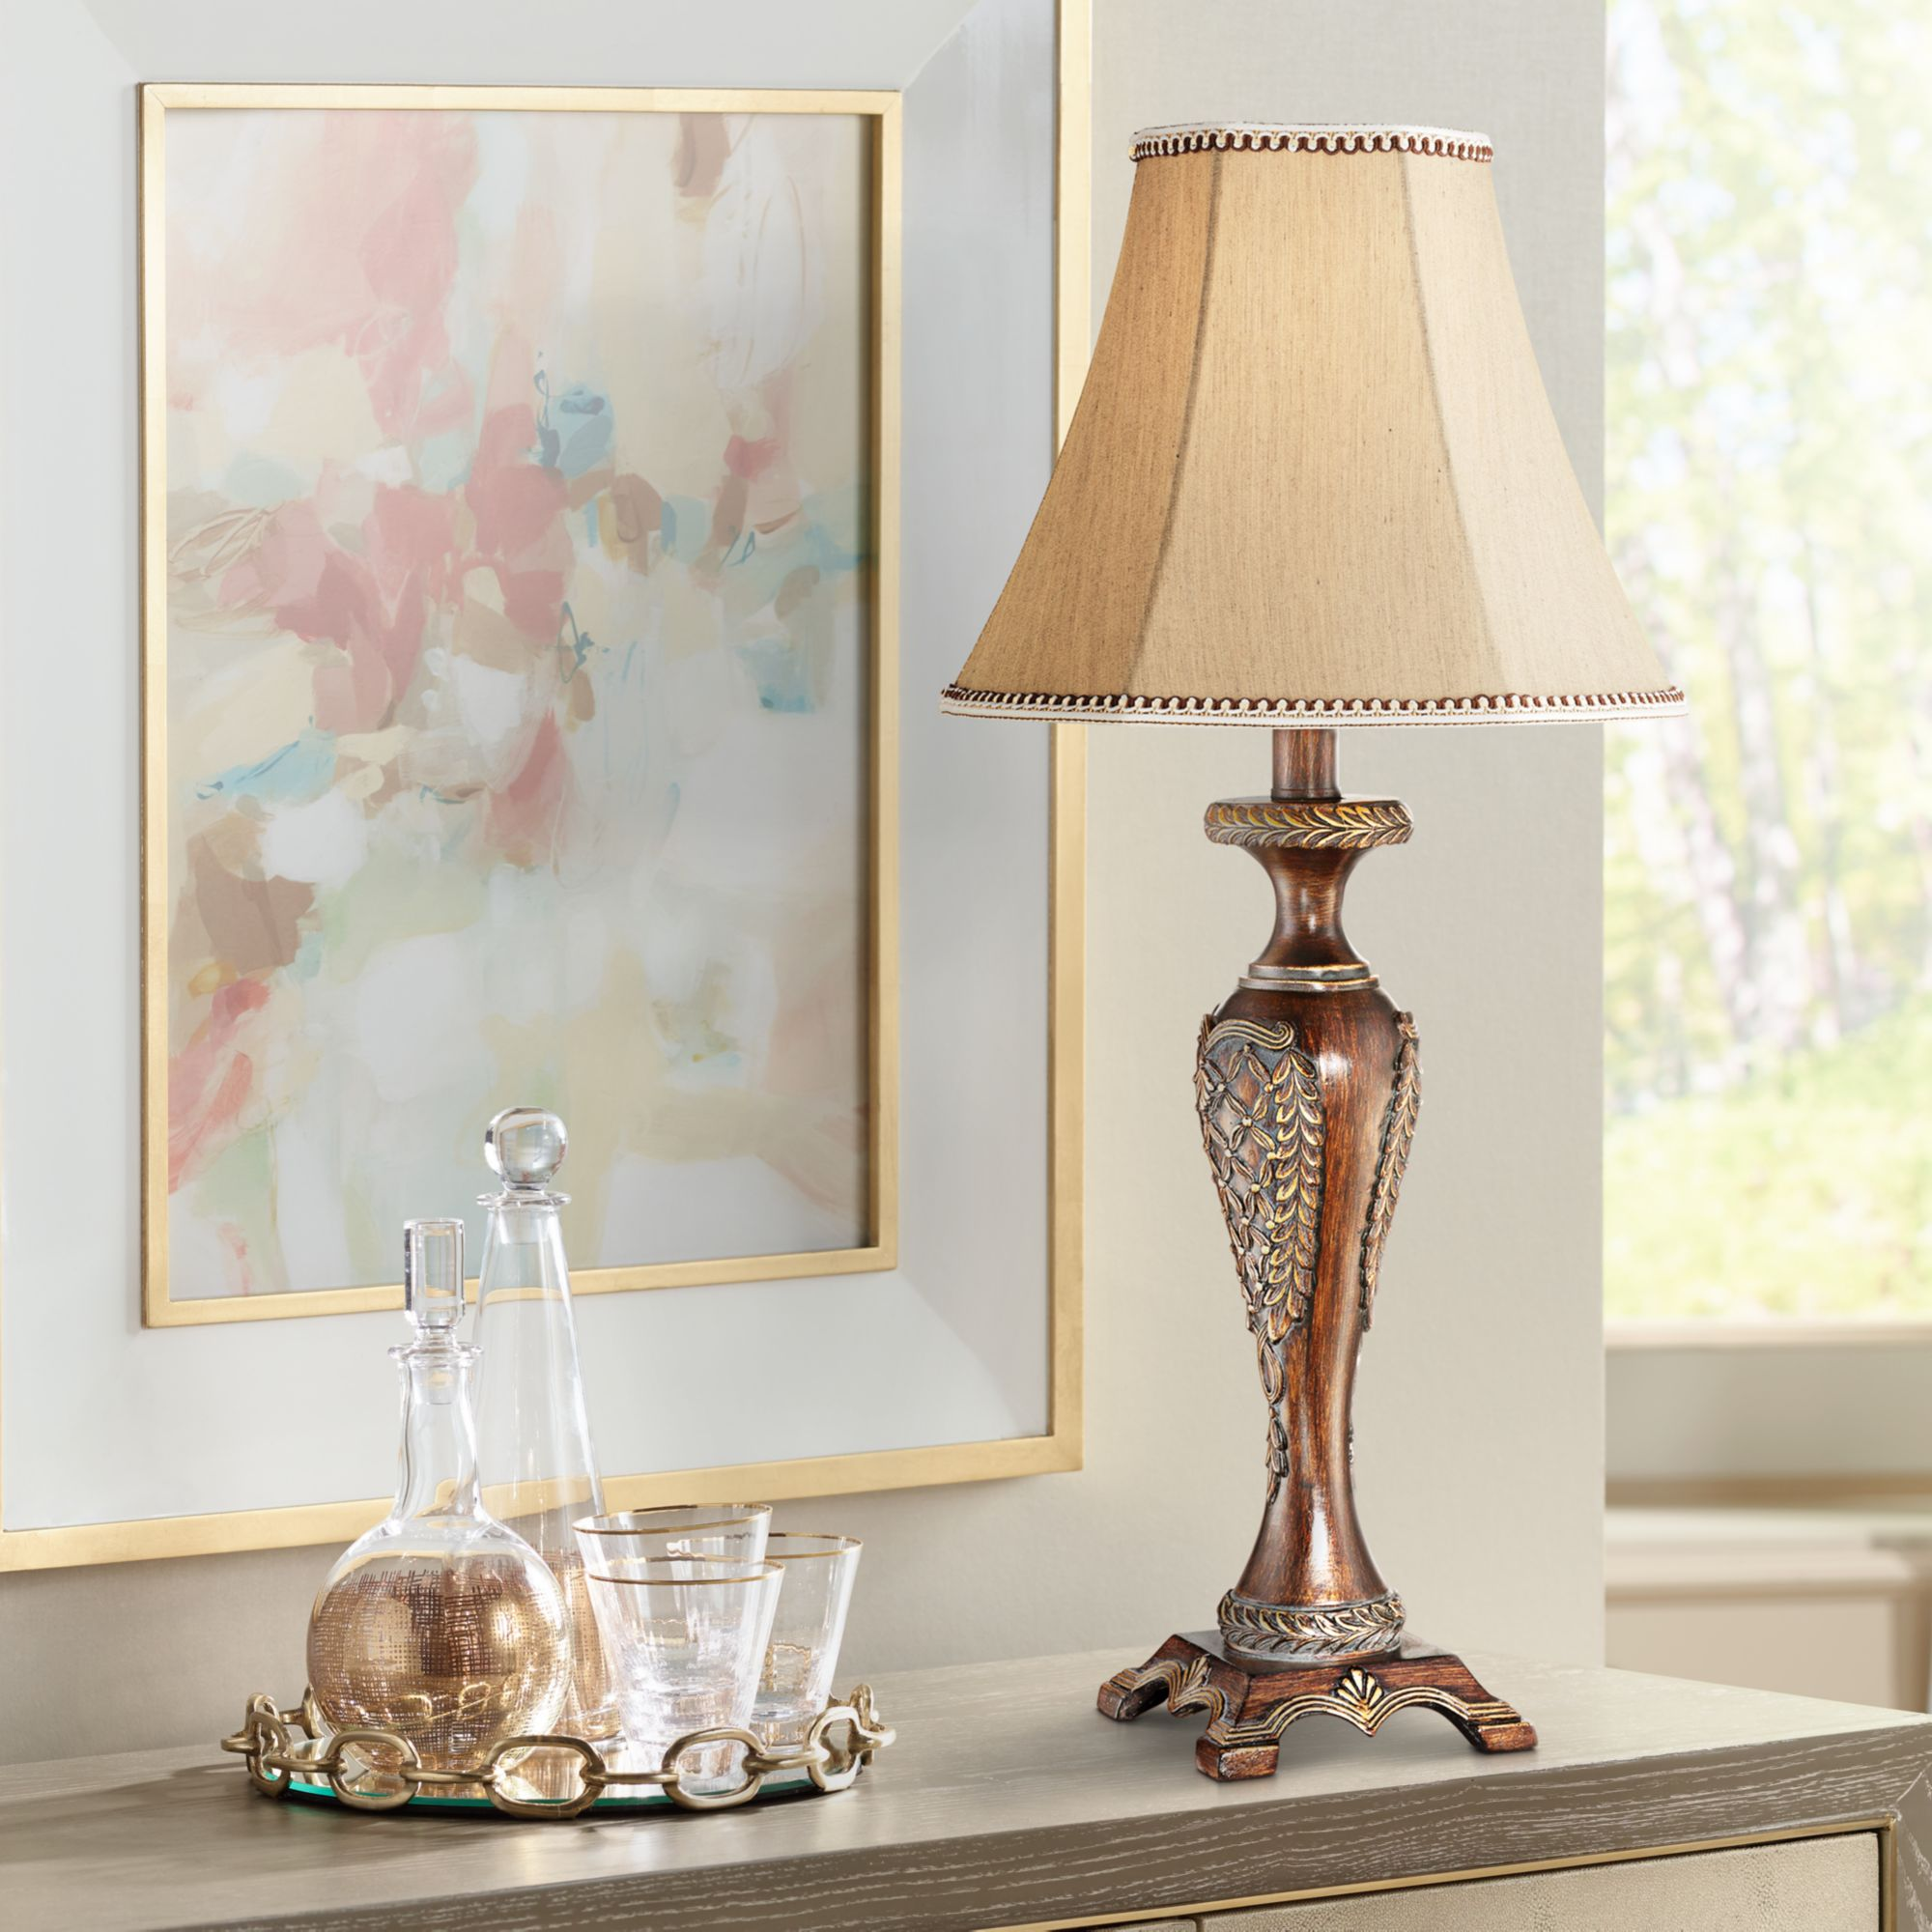 Regency Hill Traditional Accent Table Lamp Dark Bronze Candlestick Floral Detail Bell Shade for Living Room Family Bedroom Bedside